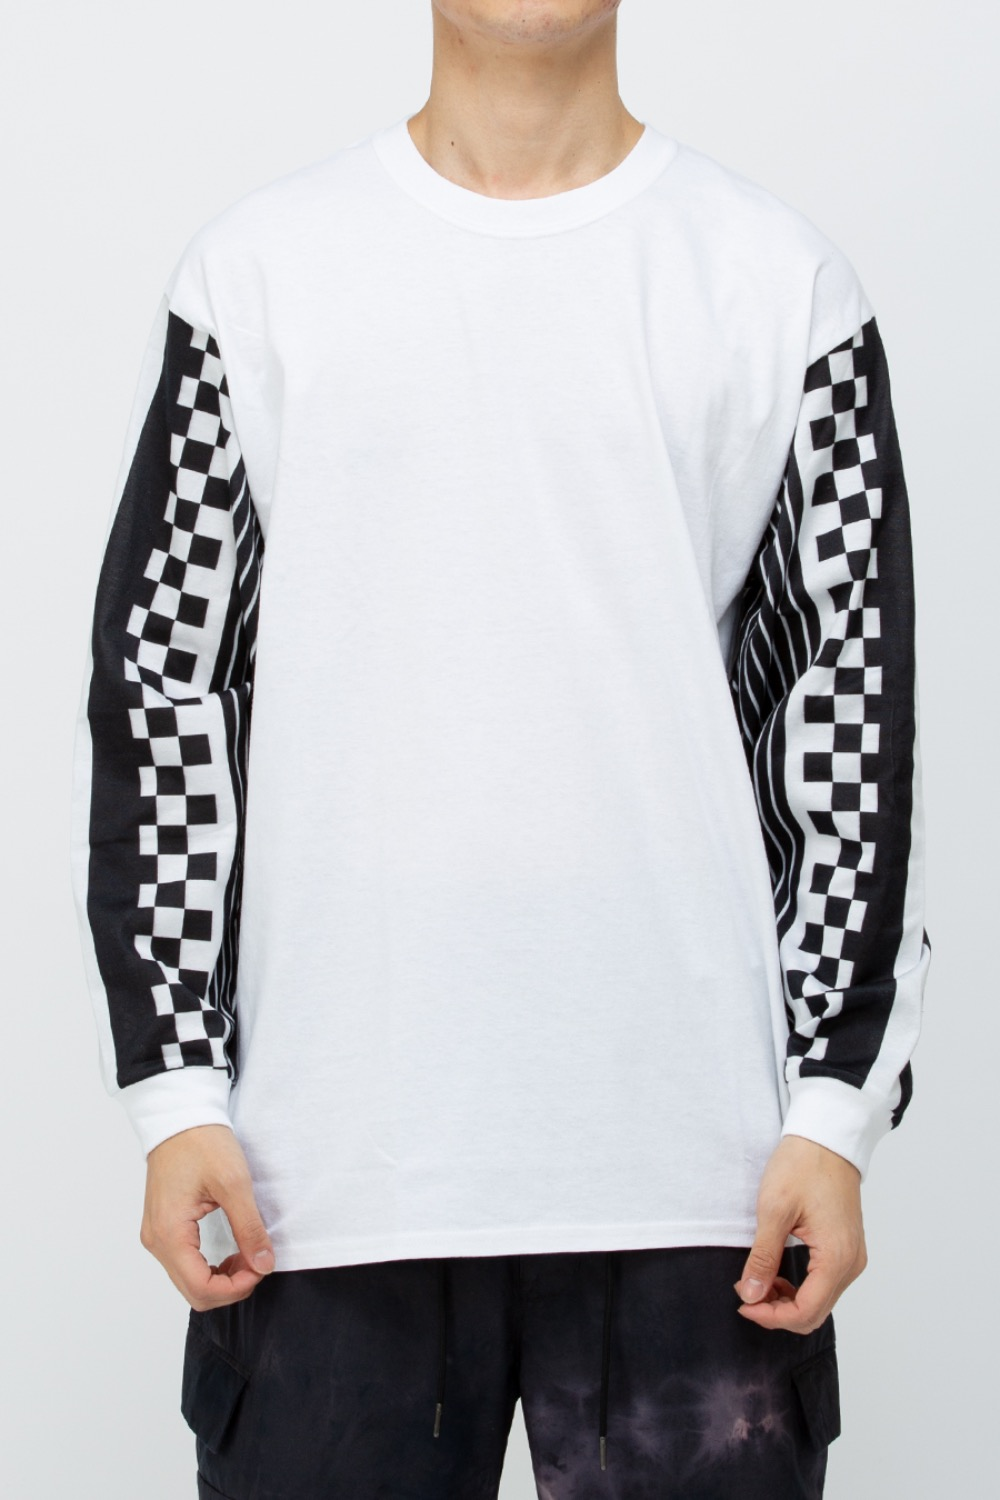 N STRIPE SLEEVE TEE WHITE/BLACK